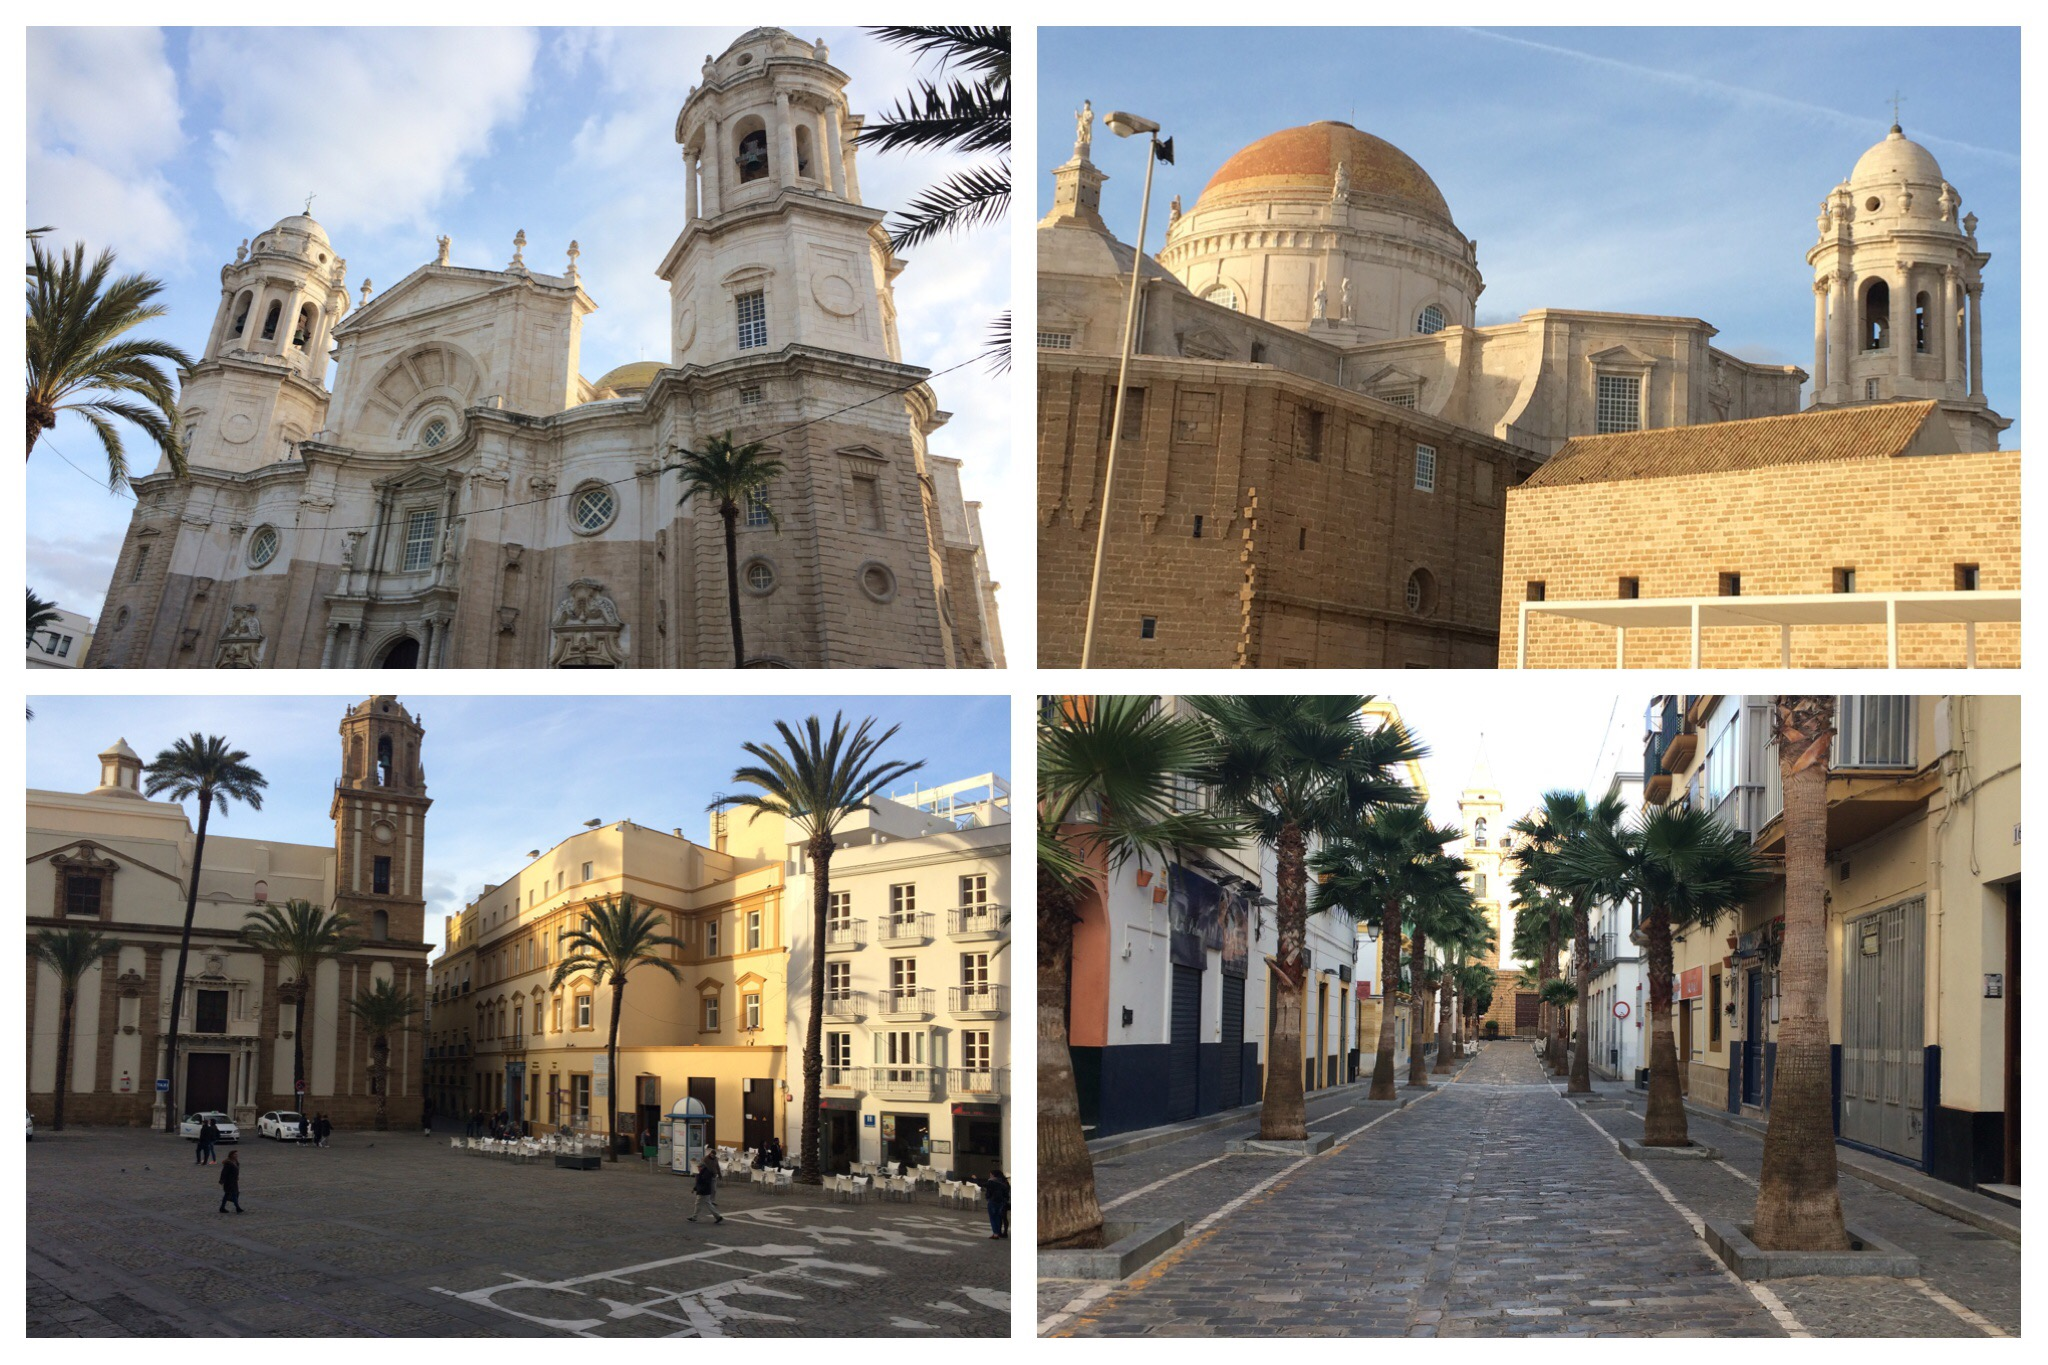 Cadiz - cathedral and typical streets in old town